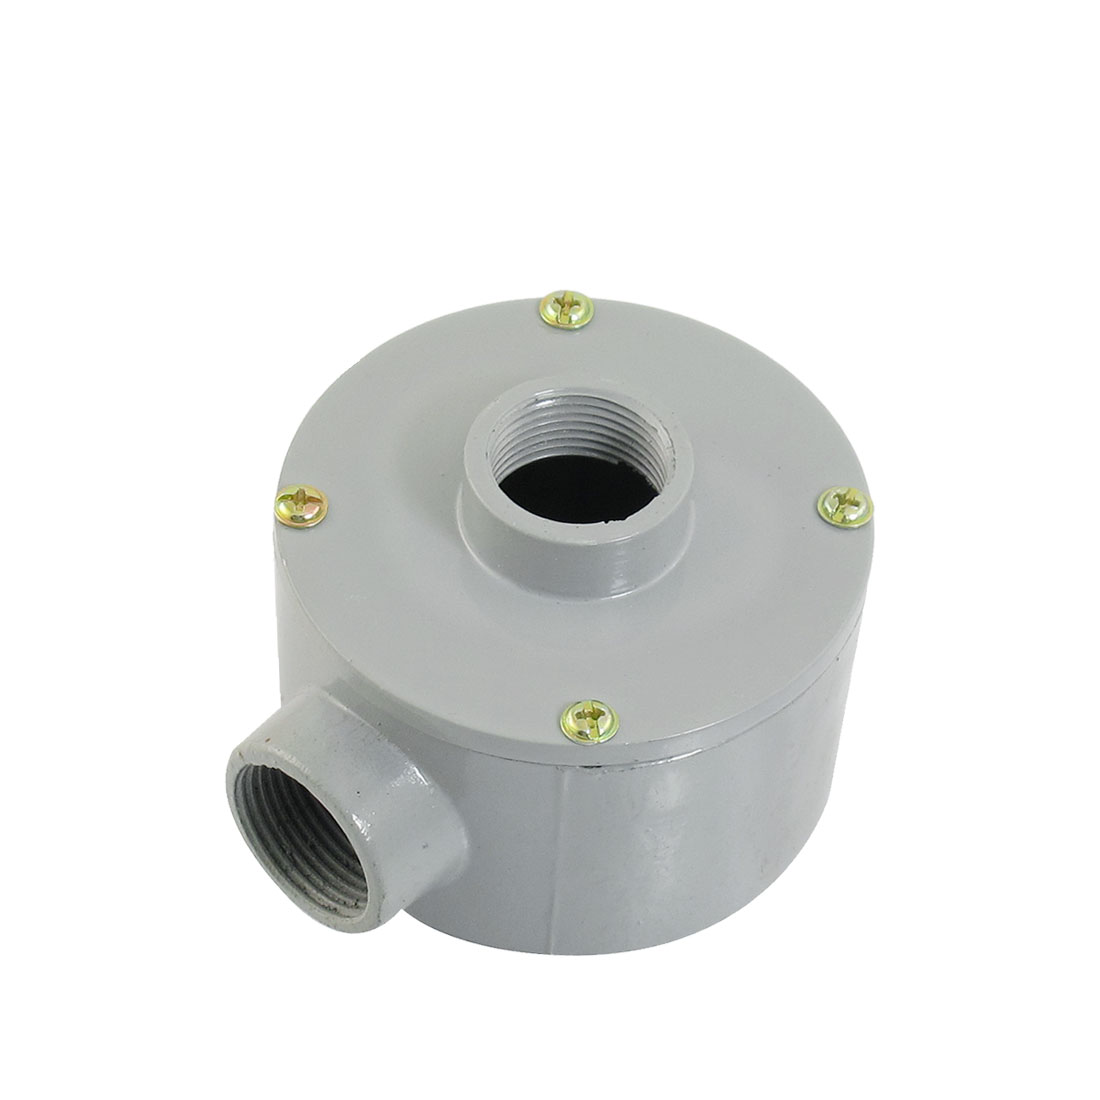 "G3/4"" Thread Two Holes Conduit Wiring Round Metal Junction Box"